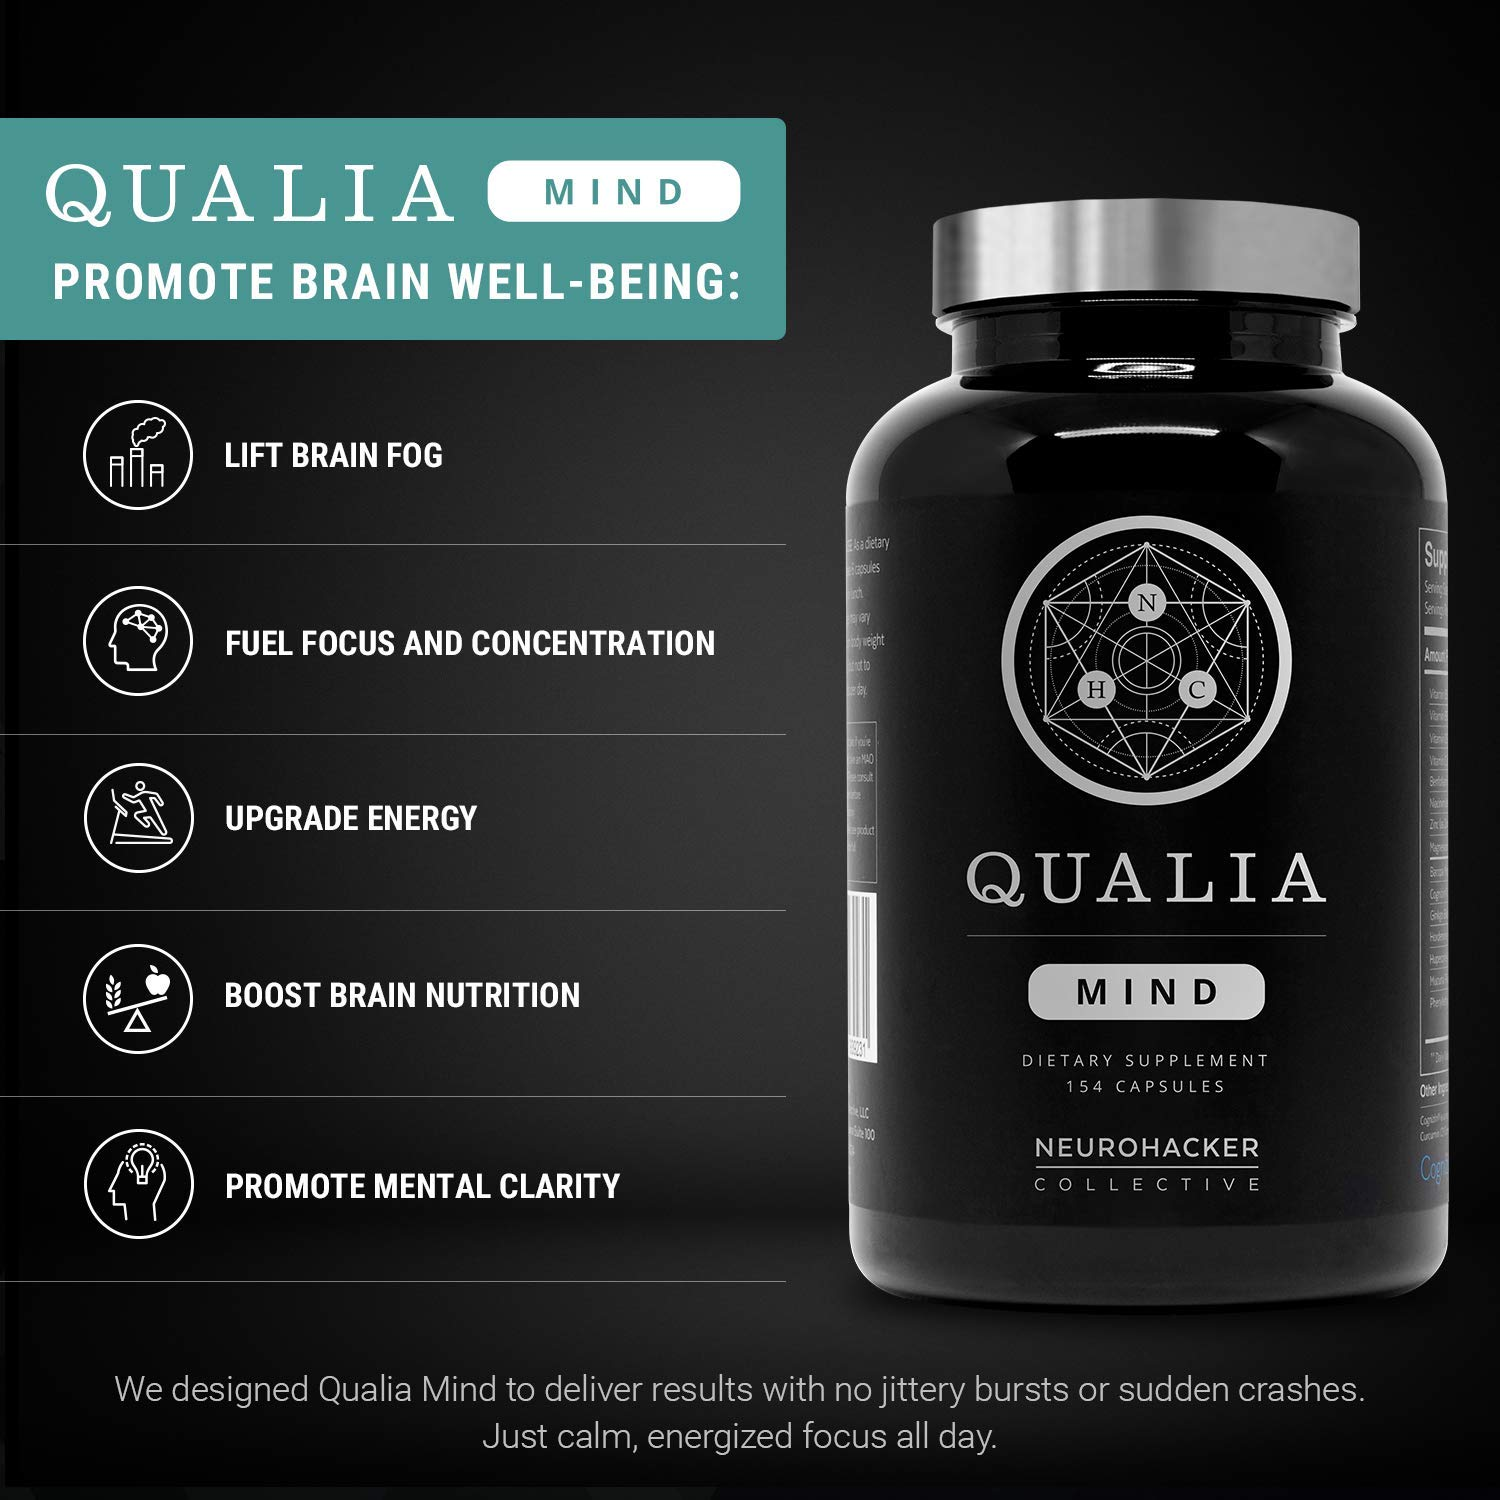 Qualia Mind quick facts